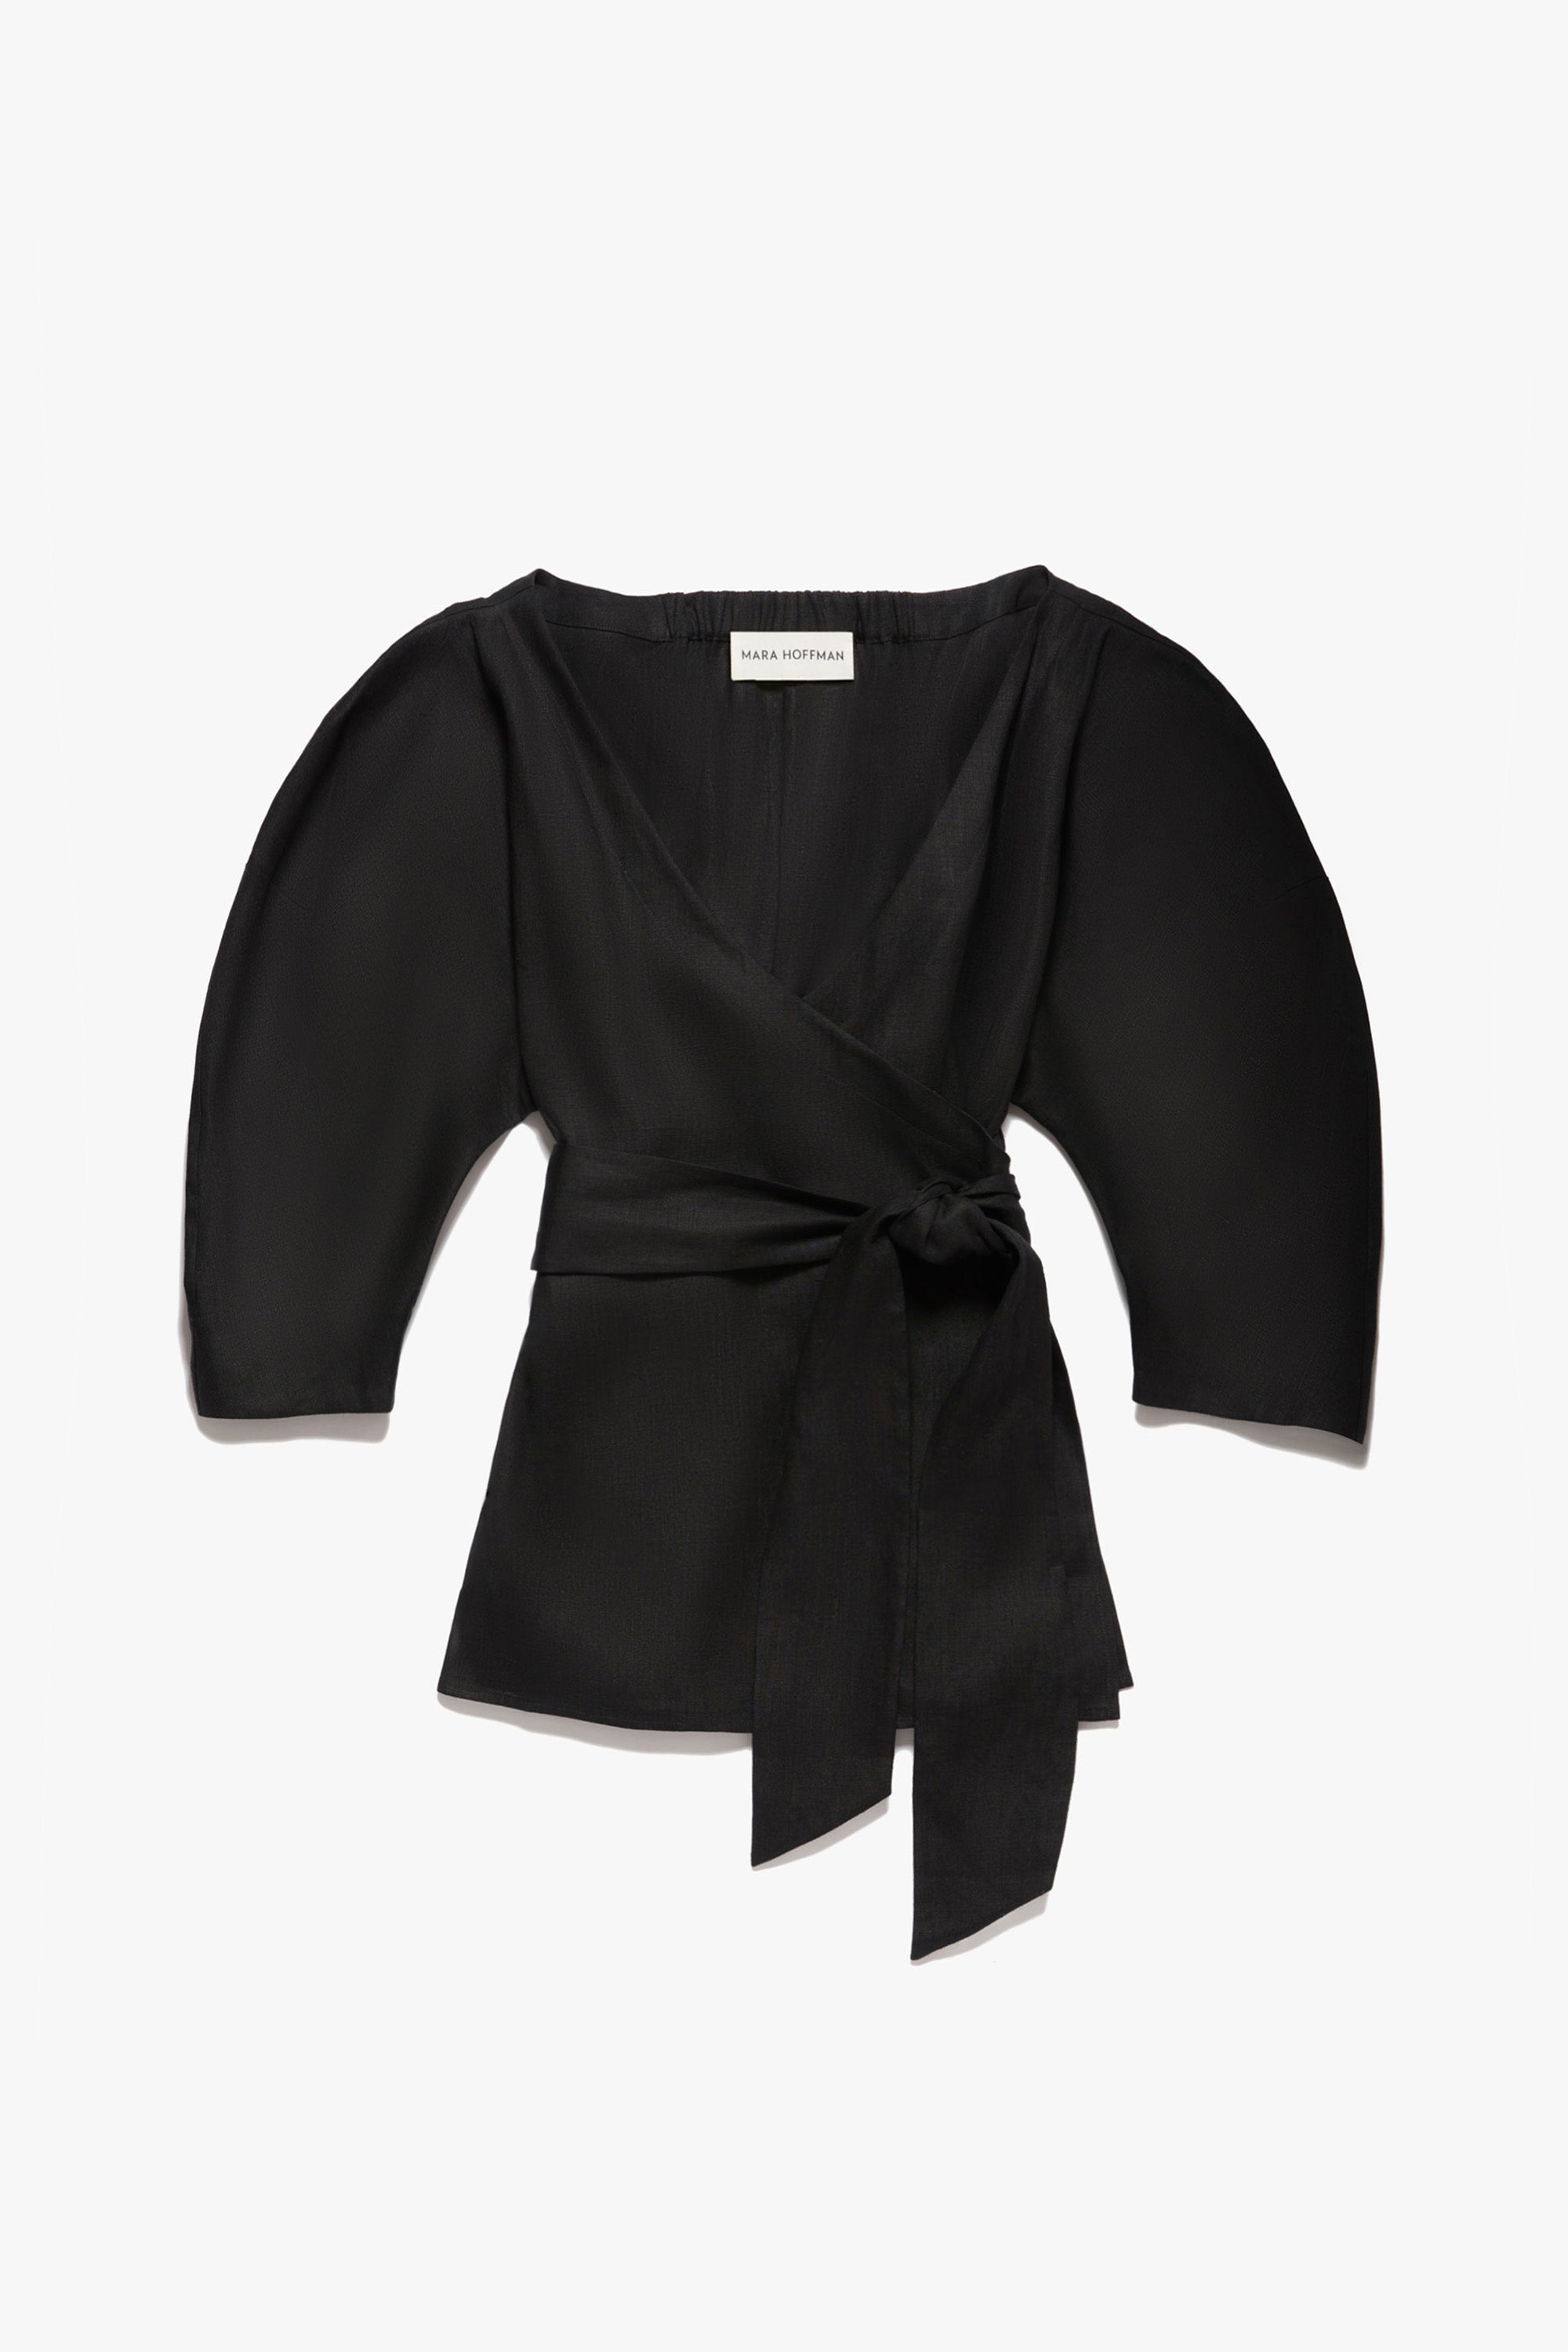 Black Emiliana Top